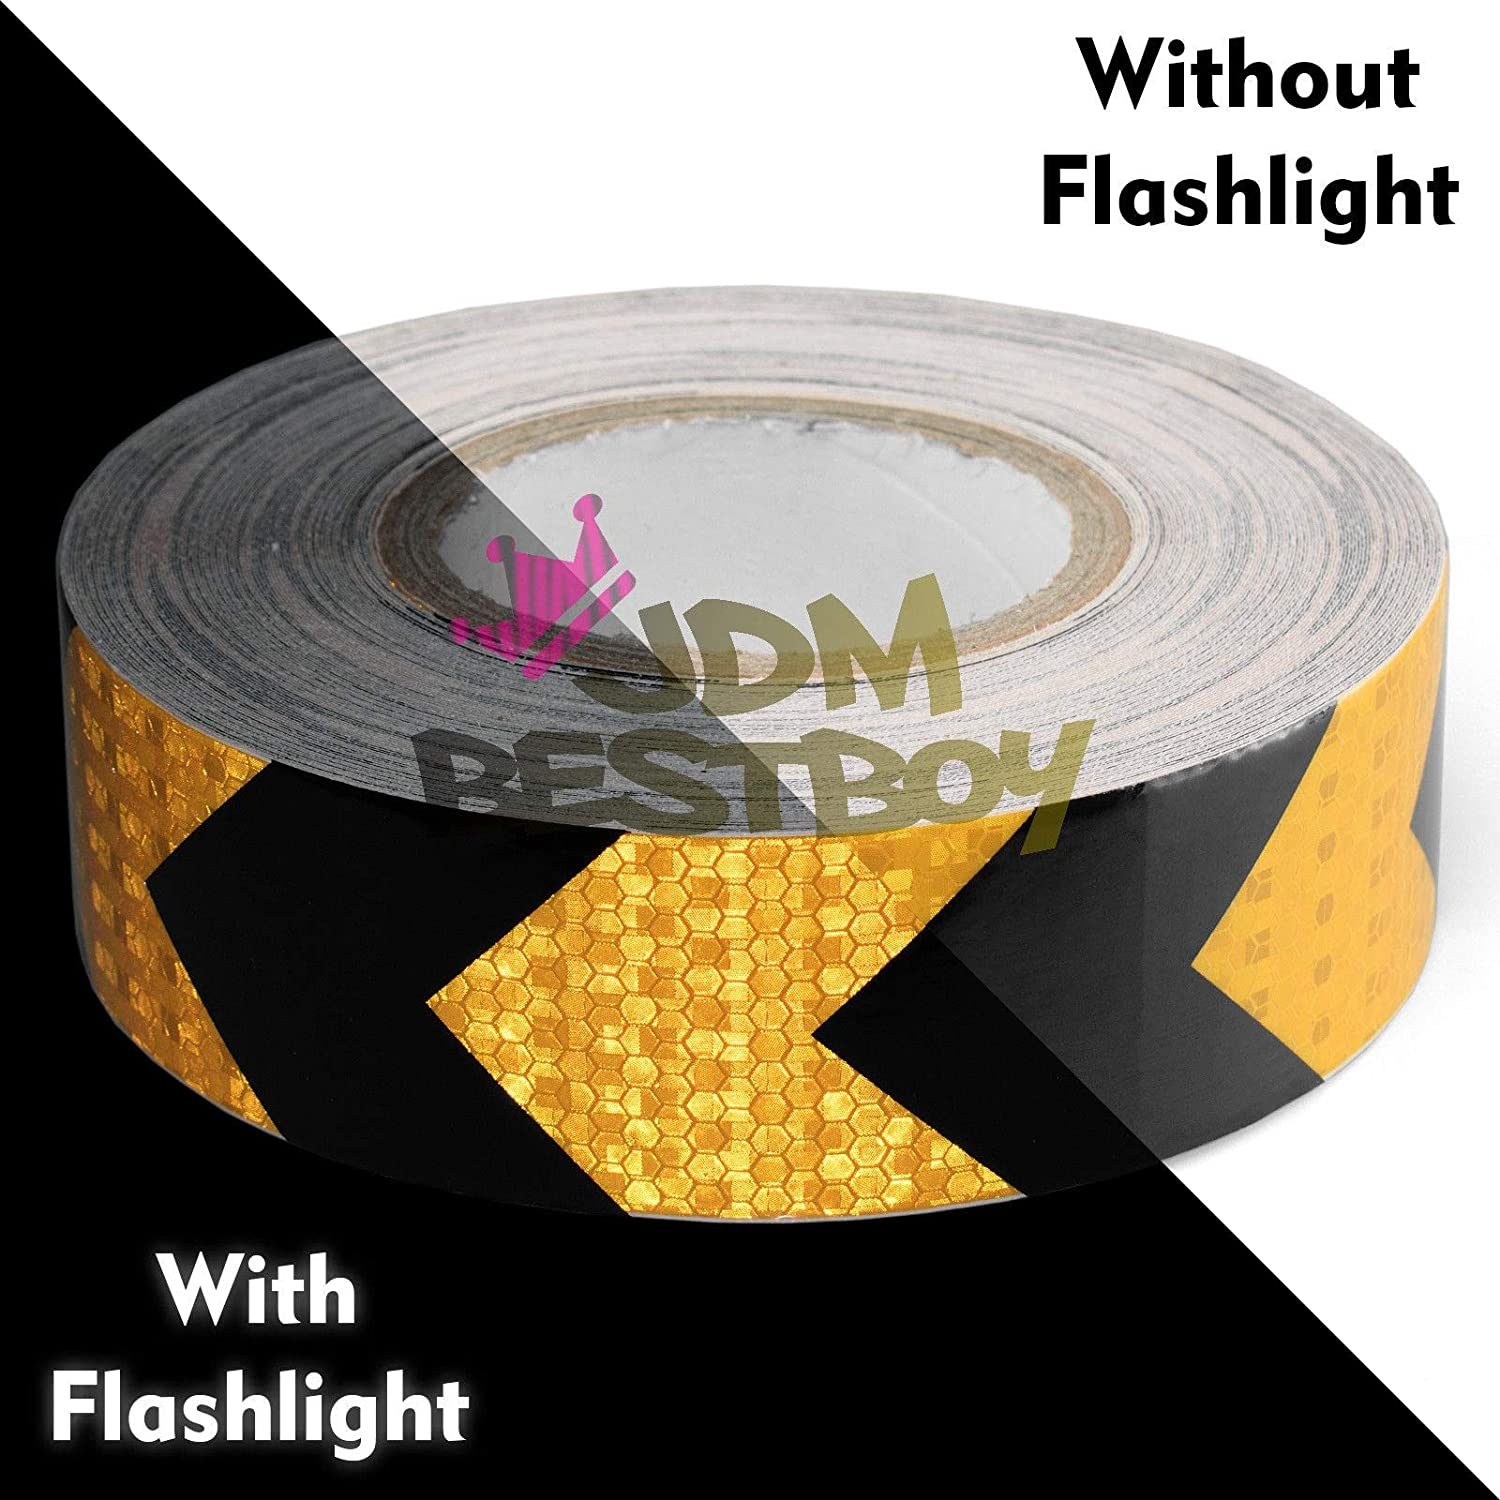 JDMBESTBOY Free Tool Kit Neon Yellow DOT-C2 Approved 2 Inch x150 Foot Reflective Safety Tape Warning Caution Adhesive Conspicuity Marking Decal Sticker Roll Truck RV Trailer Boat ATV Construction